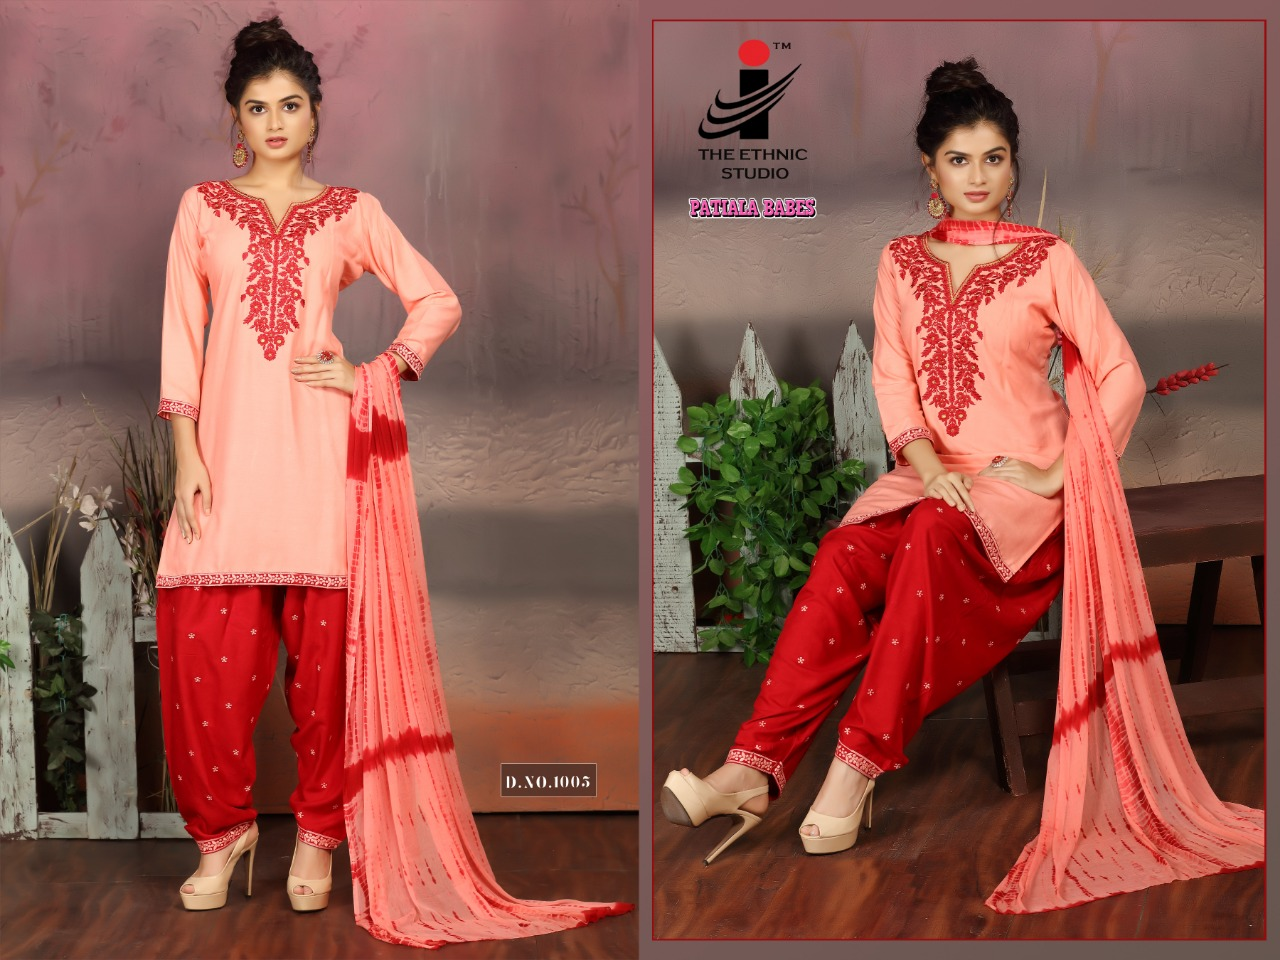 The Ethnic Studio Patiyala Babes collection 8